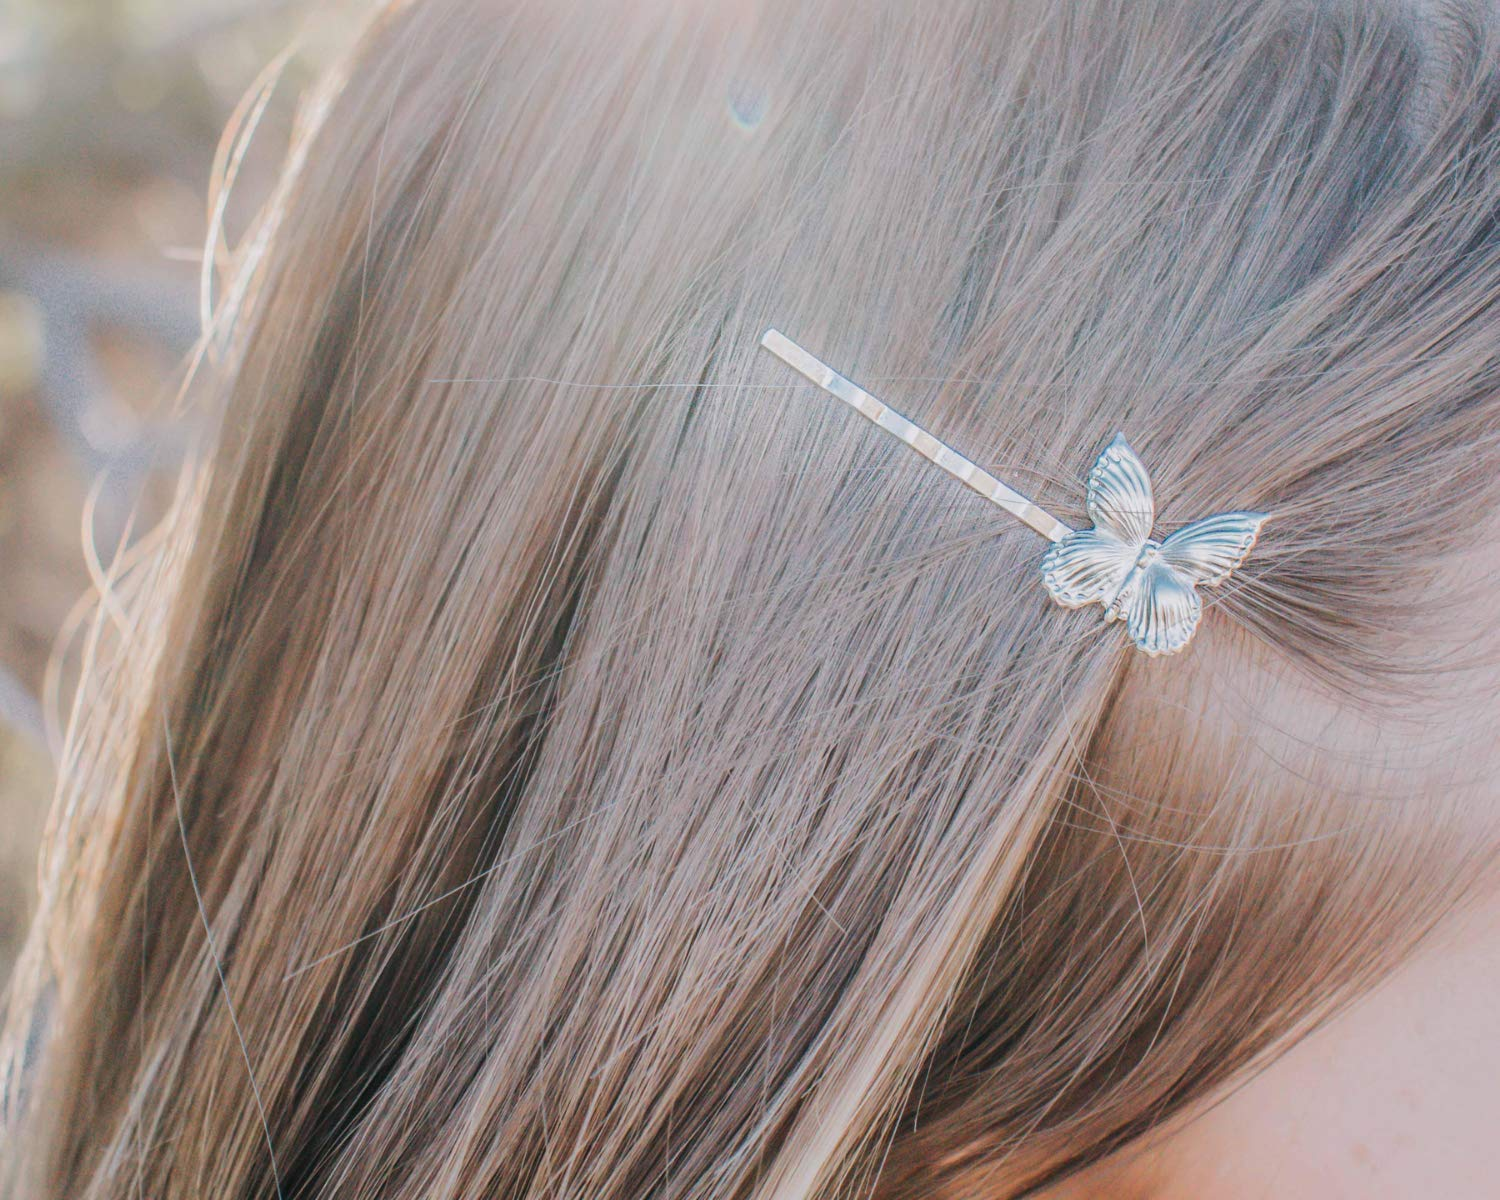 Butterfly Hair Accessories Butterfly Hair Clips Gold Metal Butterfly Hair Pins Gold or Silver Insect Hair Pins Set Of 2 Hair Pins